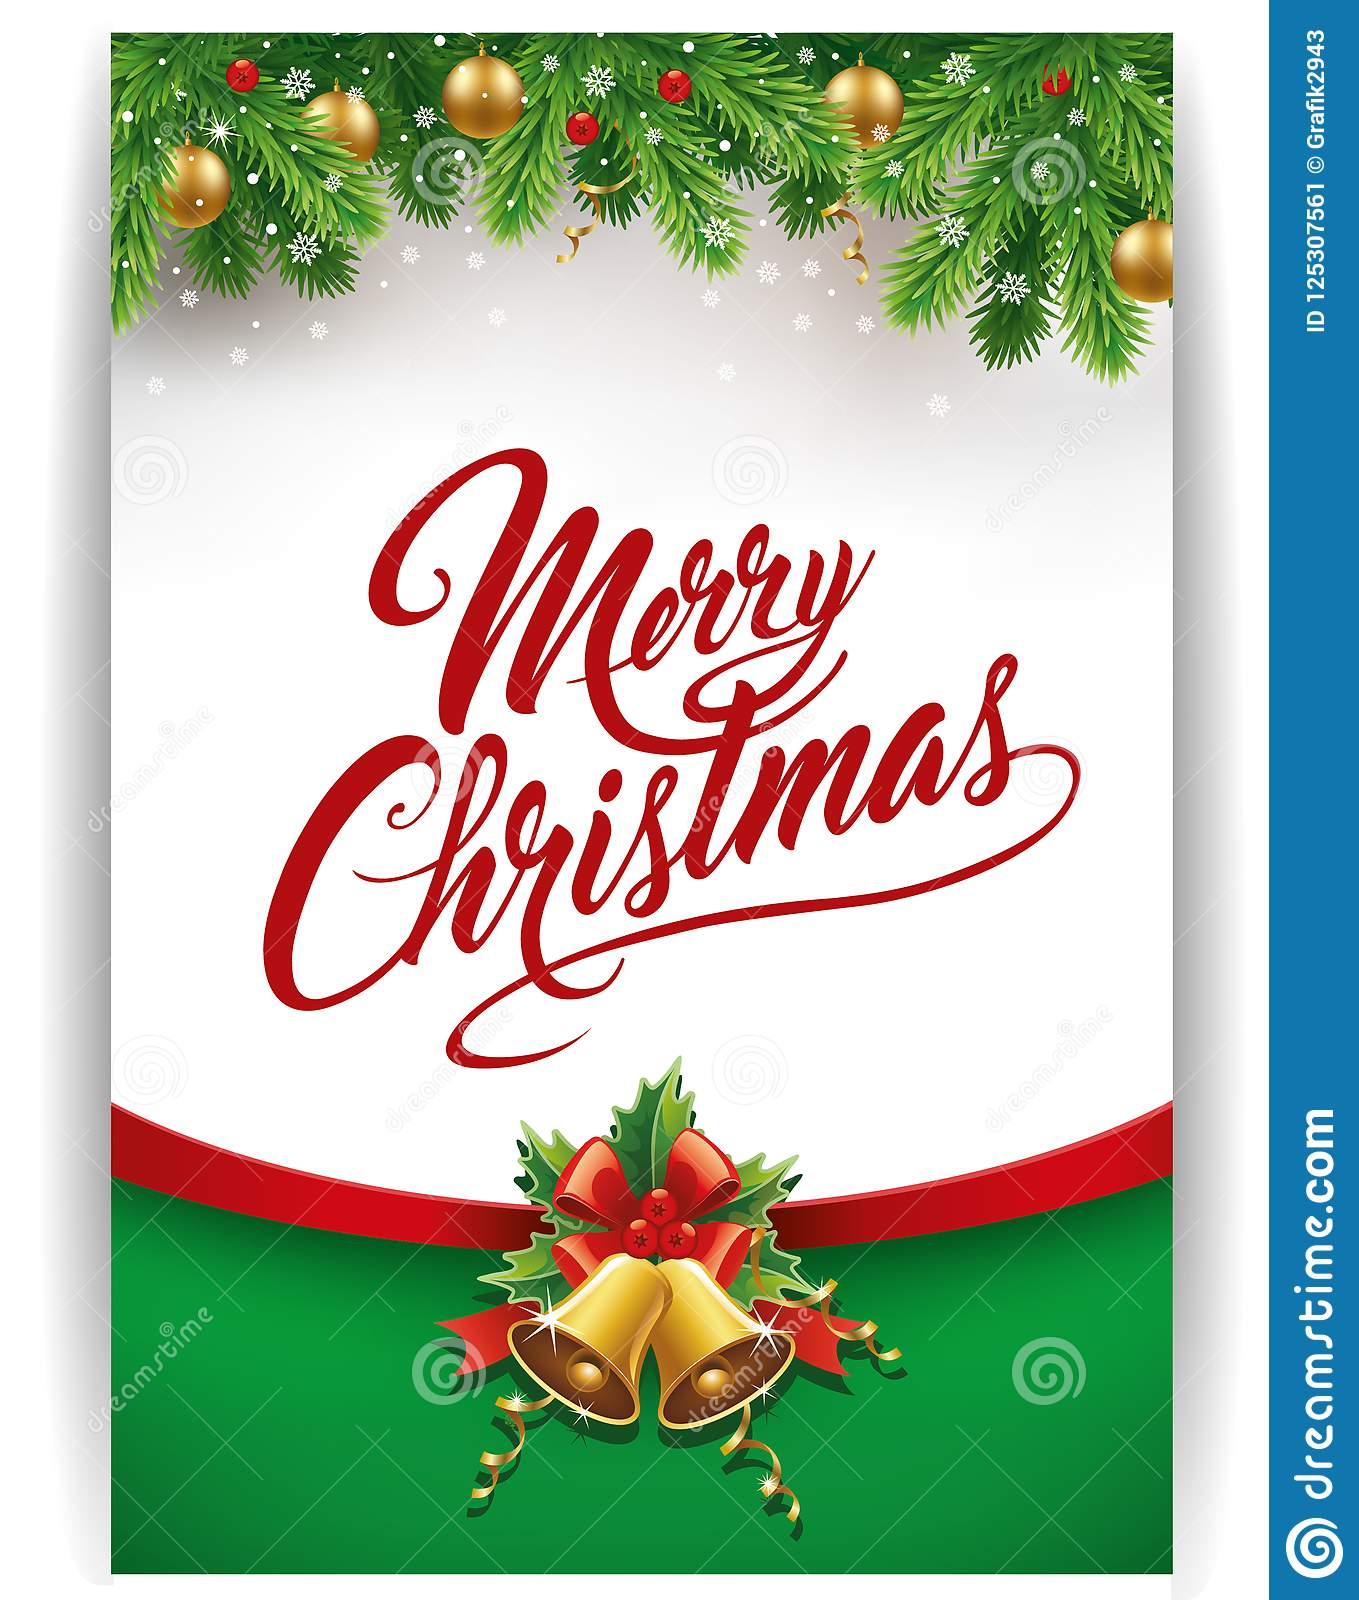 Merry Christmas Gift.Merry Christmas Gift Card With Traditional Decorations Stock